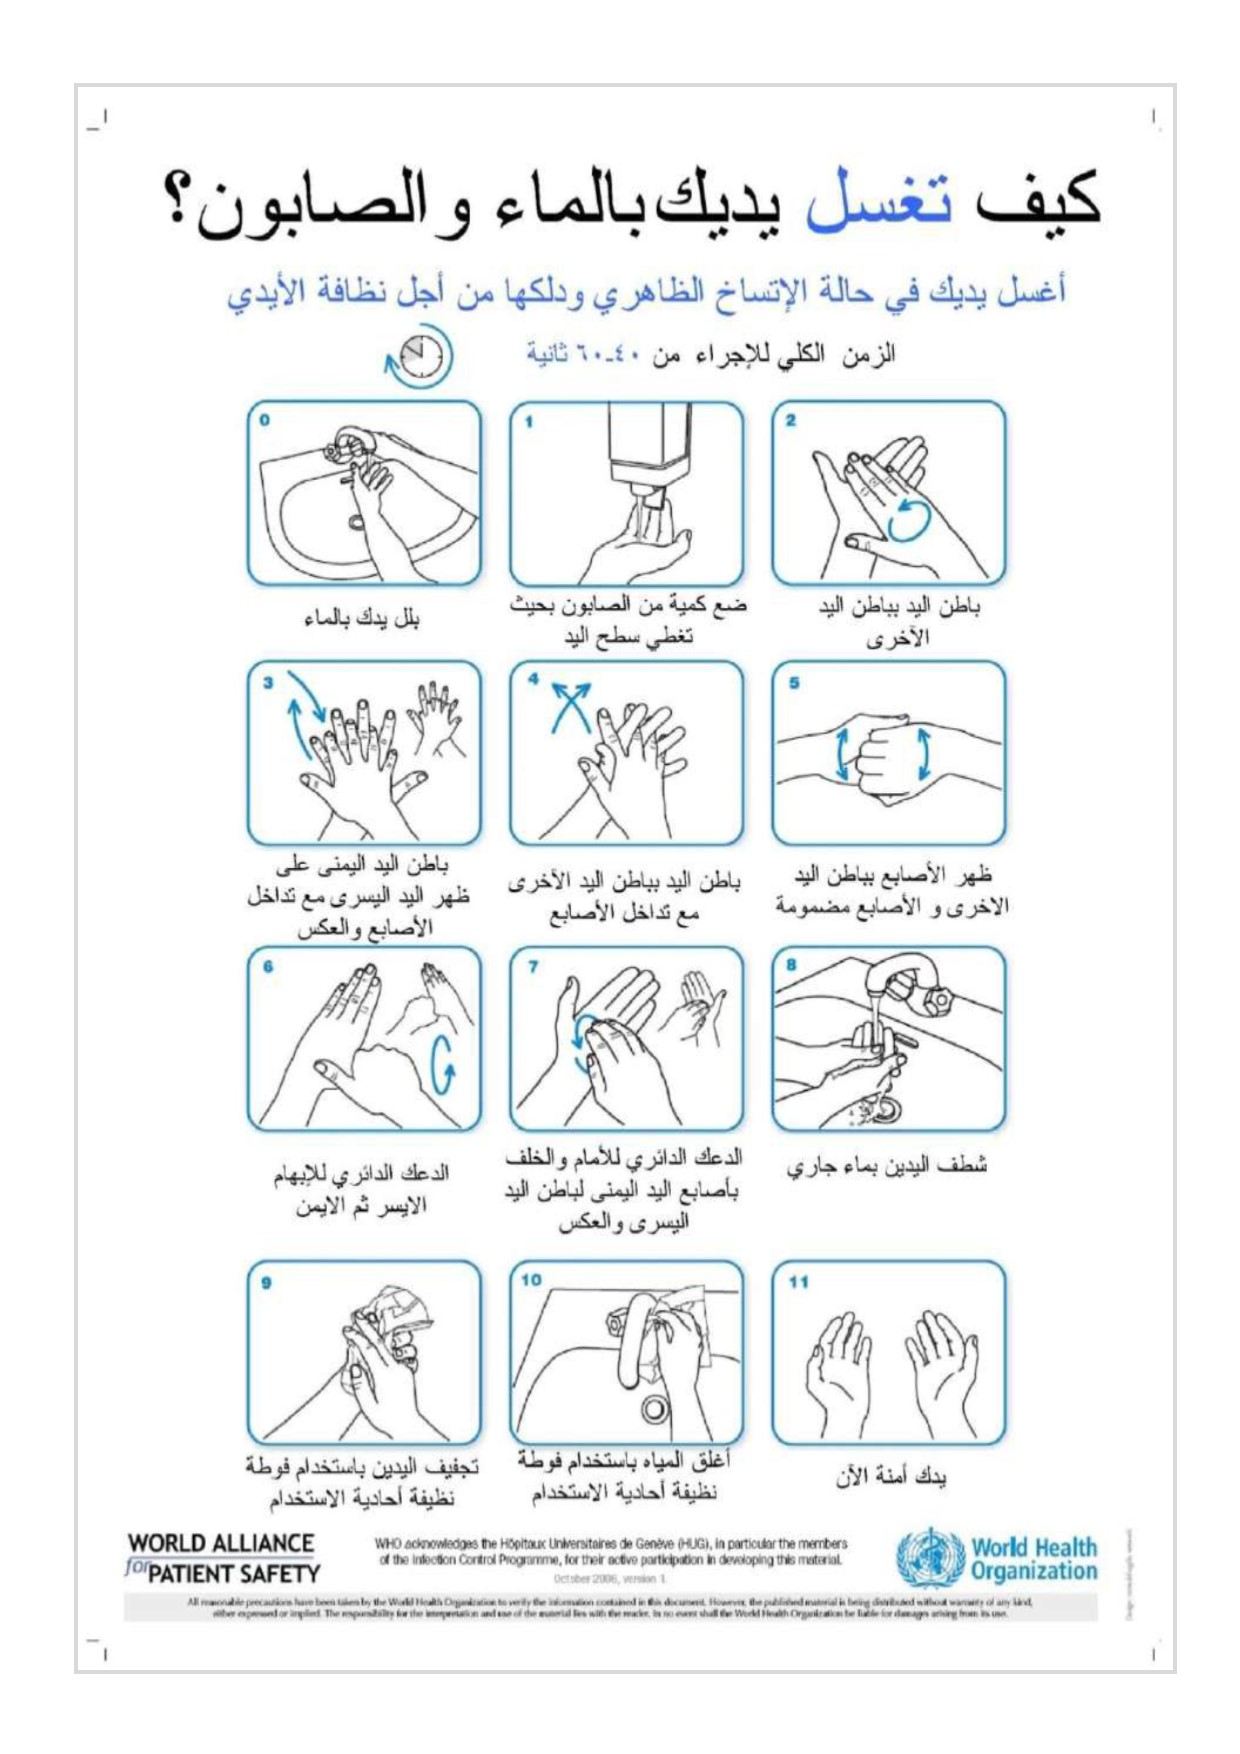 Handwashing_Arabic.jpg